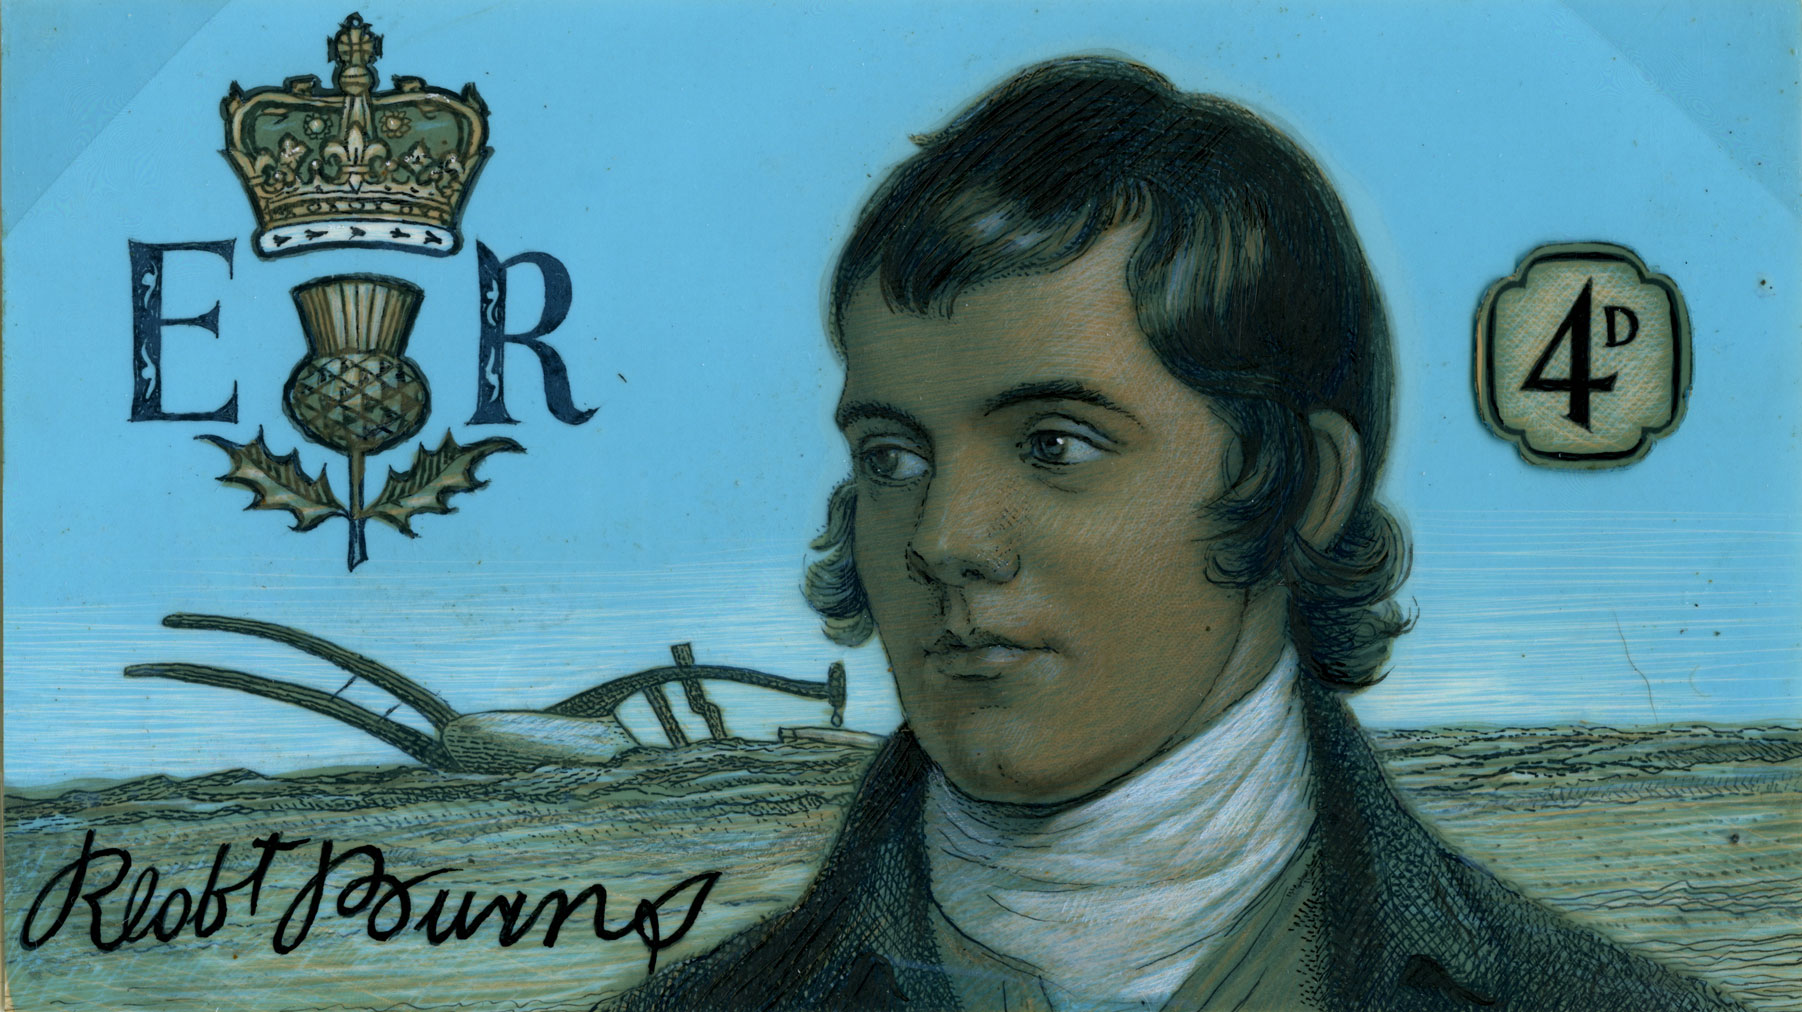 Stamp depicting a portrait of Burns along with his signature and an ER cypher with thistle.